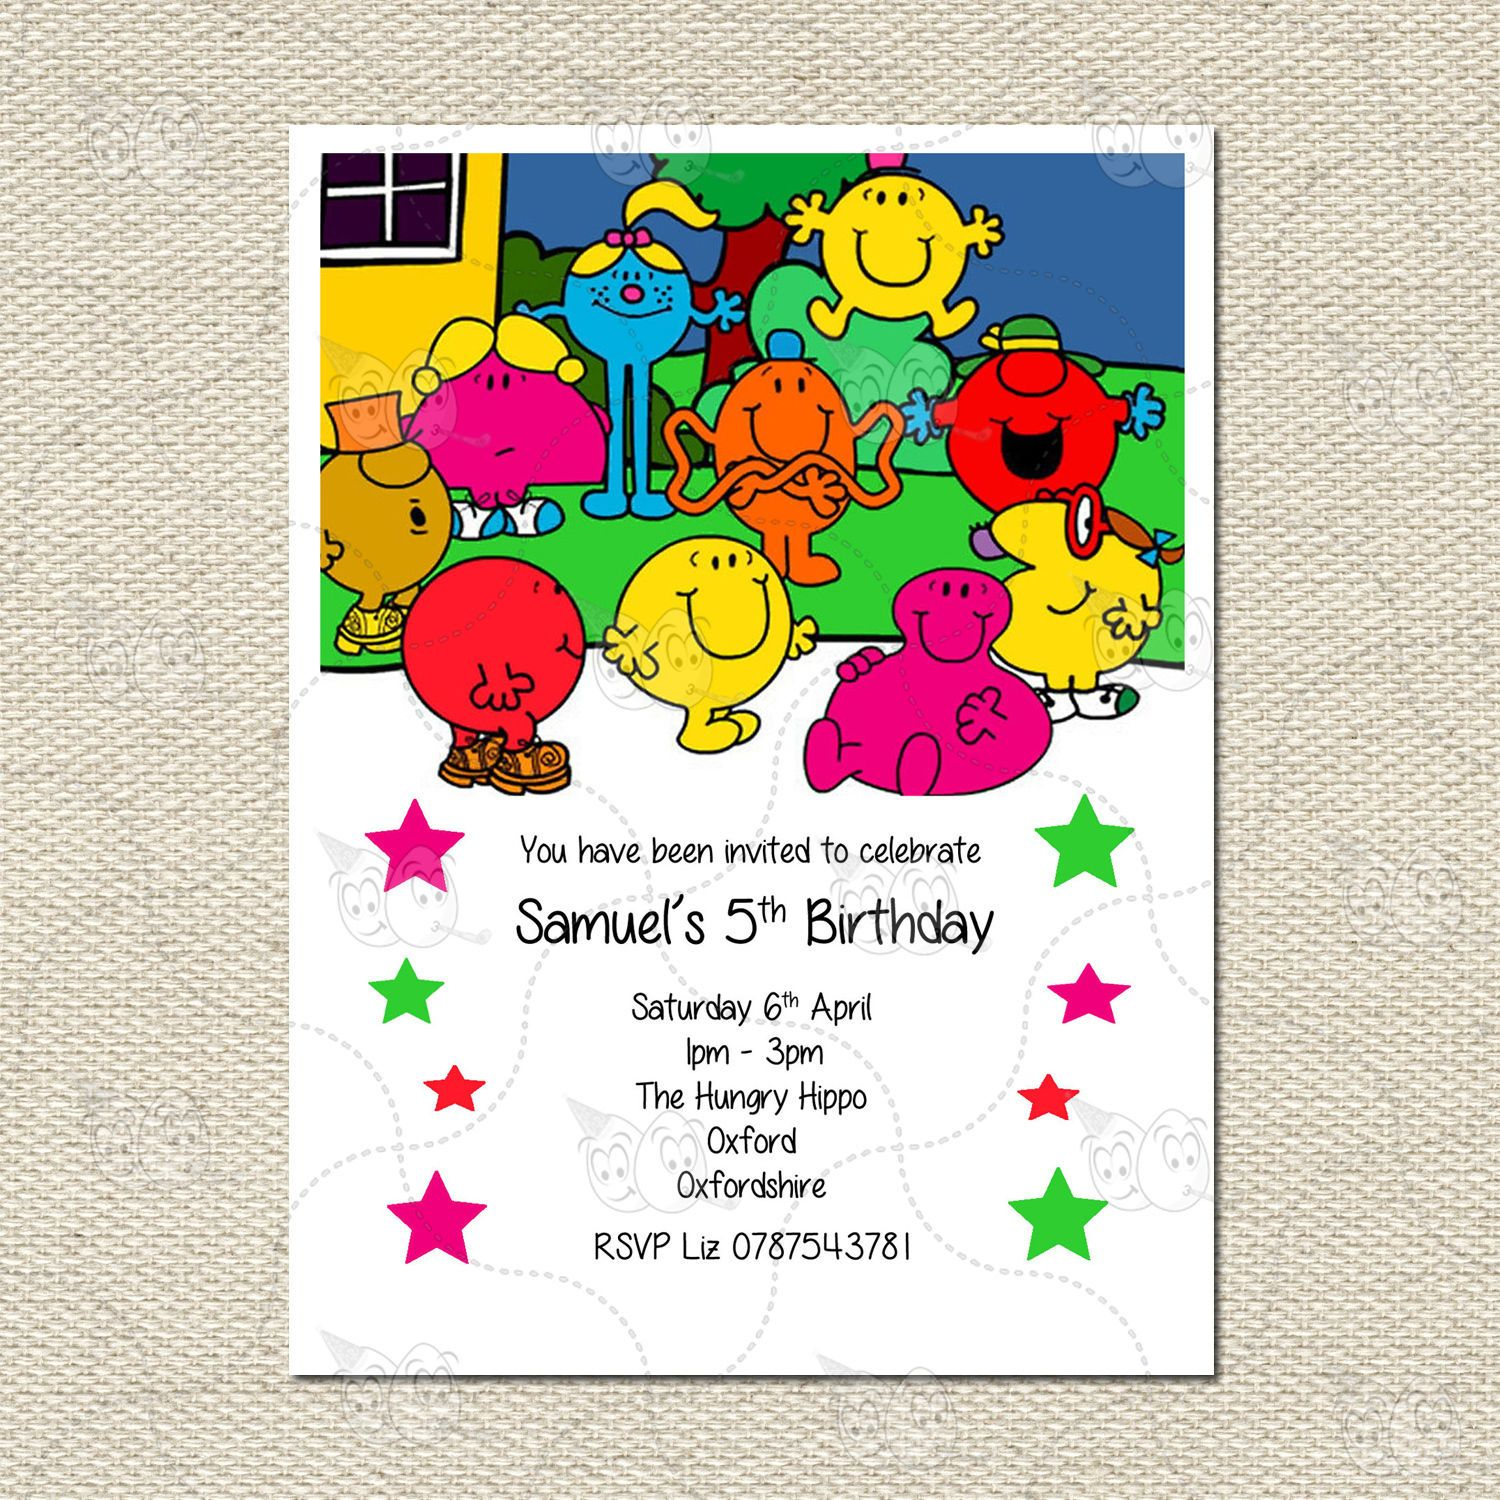 Personalised Mr Men Characters Party Birthday Invites Inc. Envelopes ...